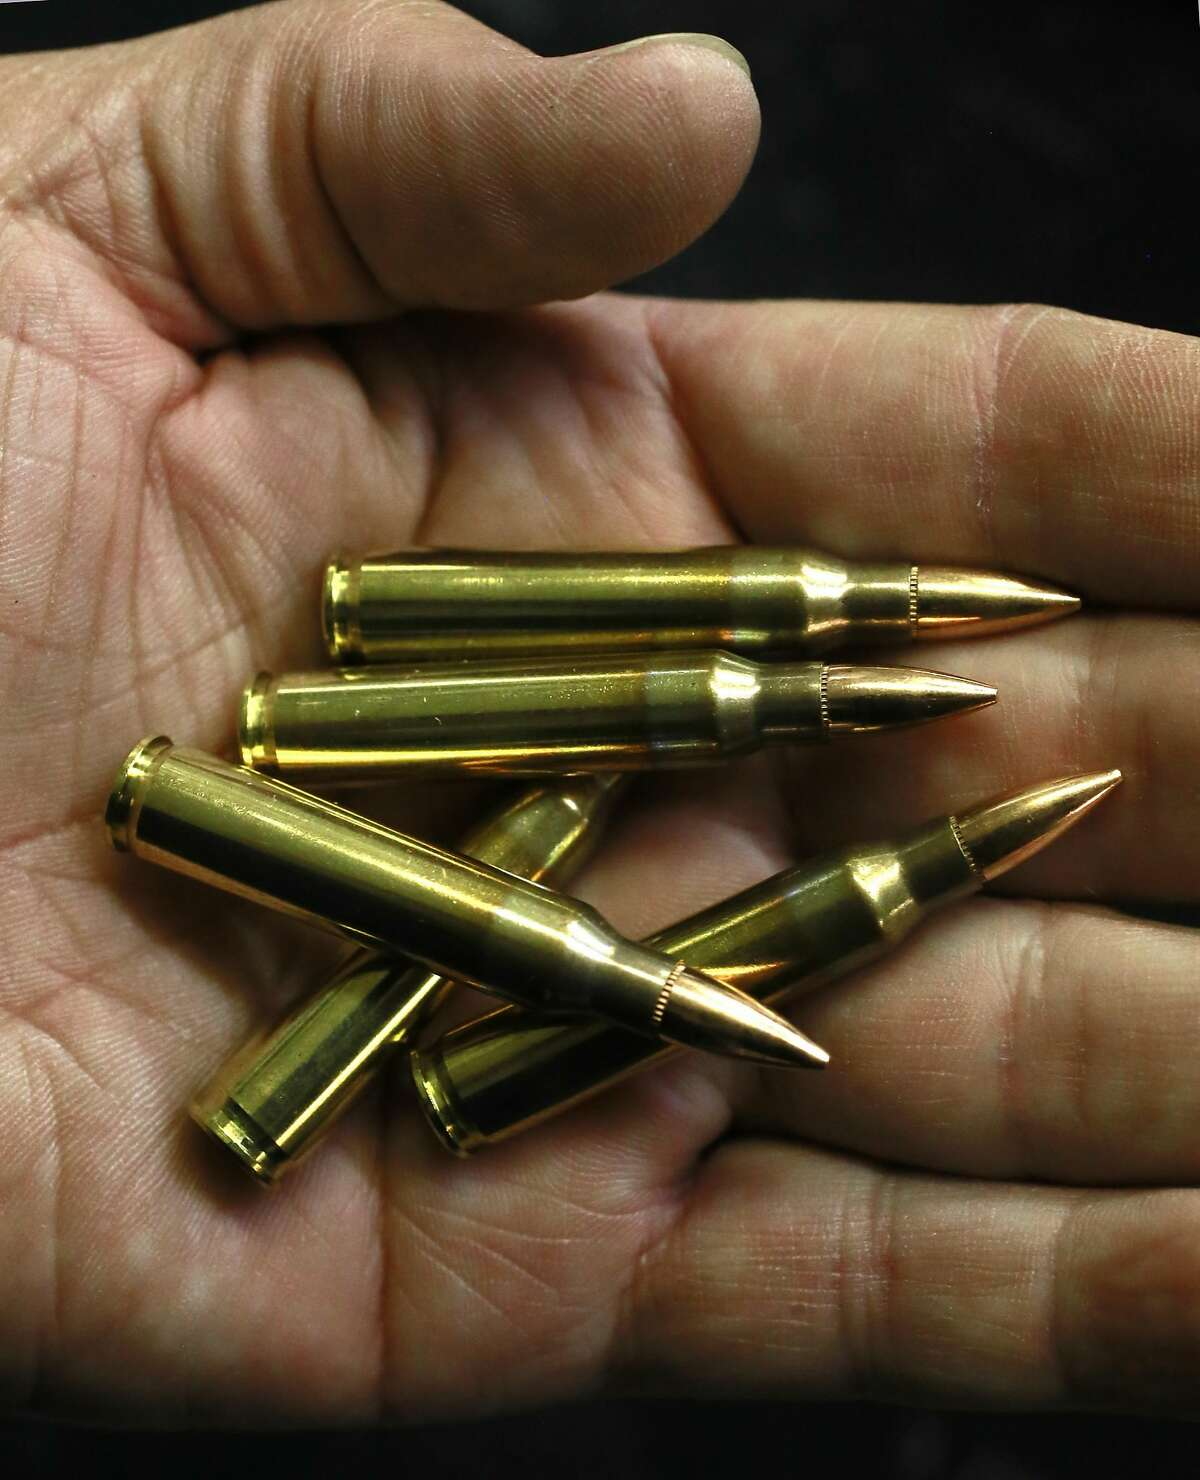 AR-15 rounds displayed by instructor Harold Johnson of Bay Area Firearms Instruction at their office in Burlingame, Calif., on Thurs. September 22, 2016.